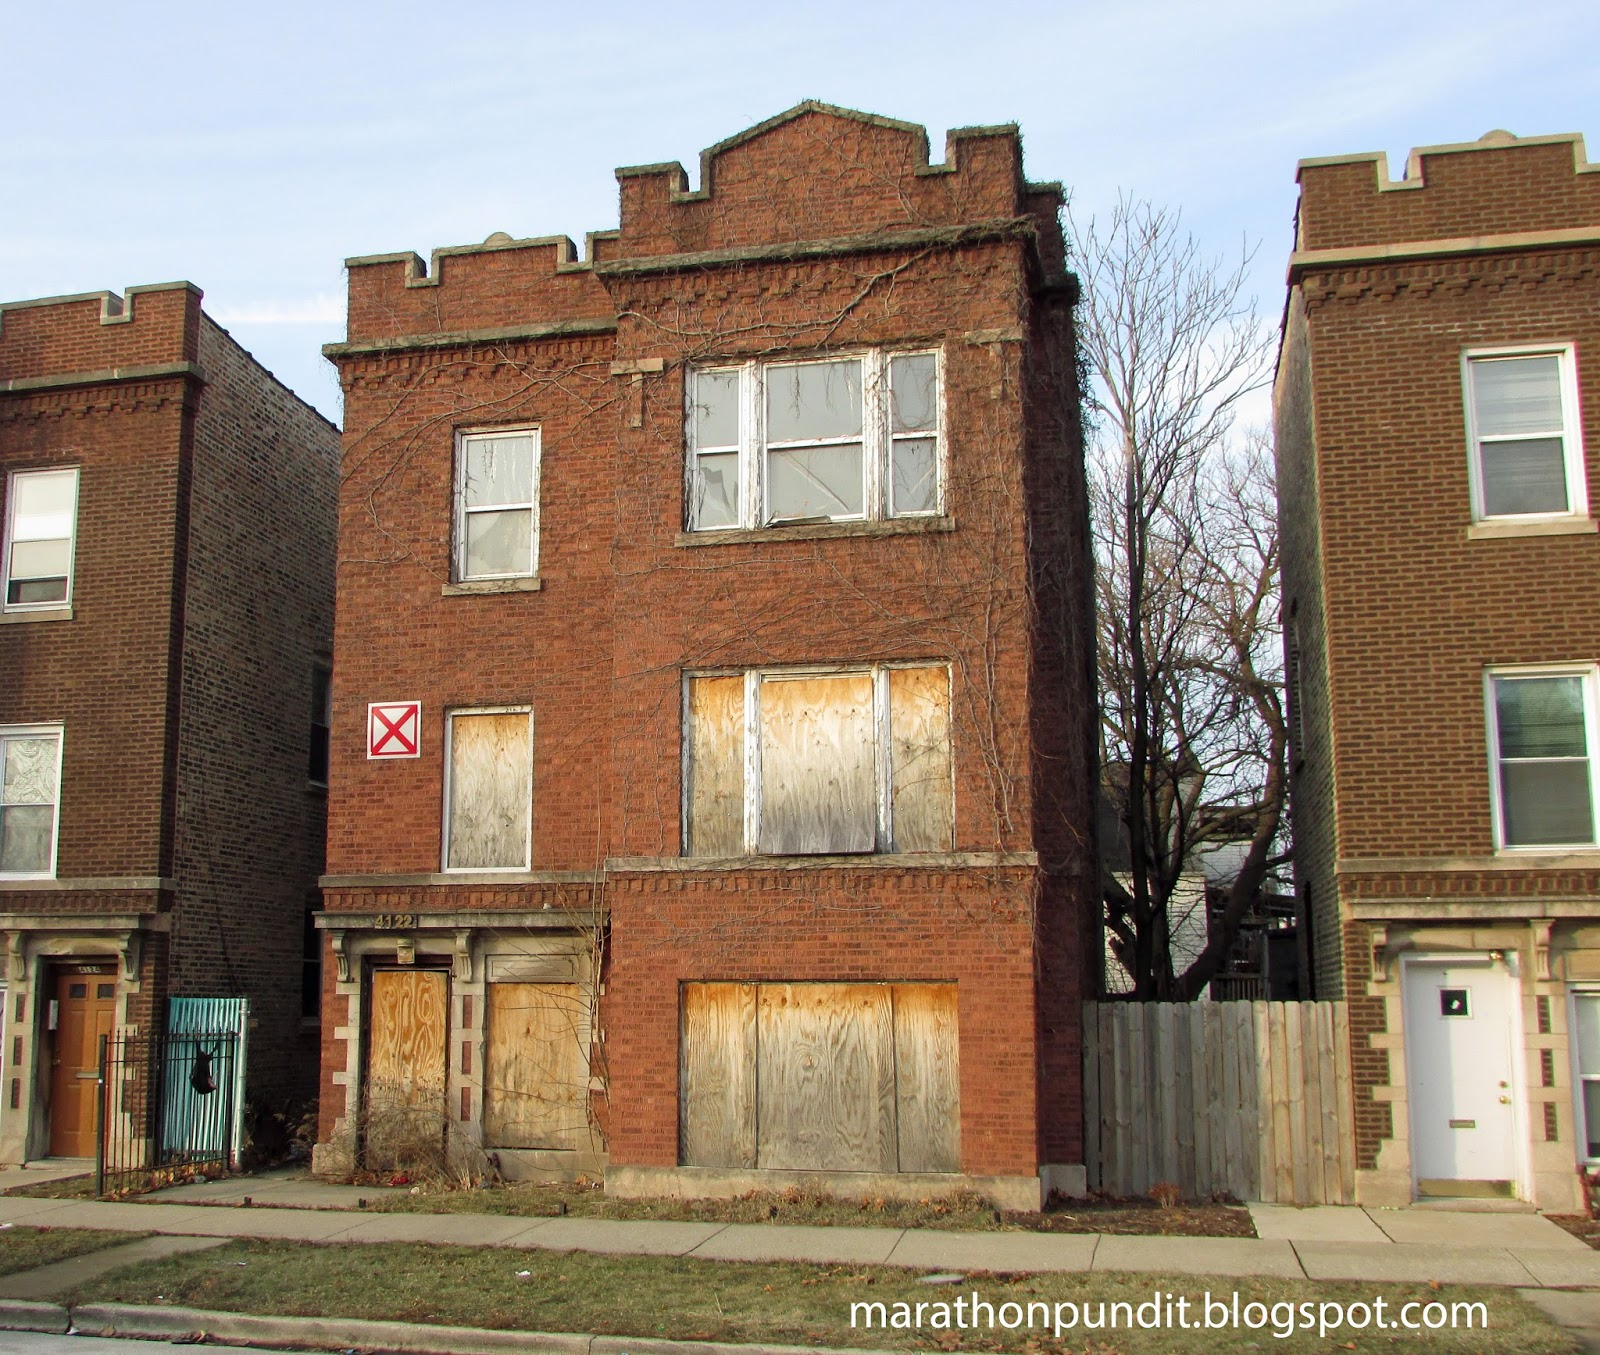 New Apartment Buildings Chicago: Marathon Pundit: (Photos) Abandoned Homes In Chicago's